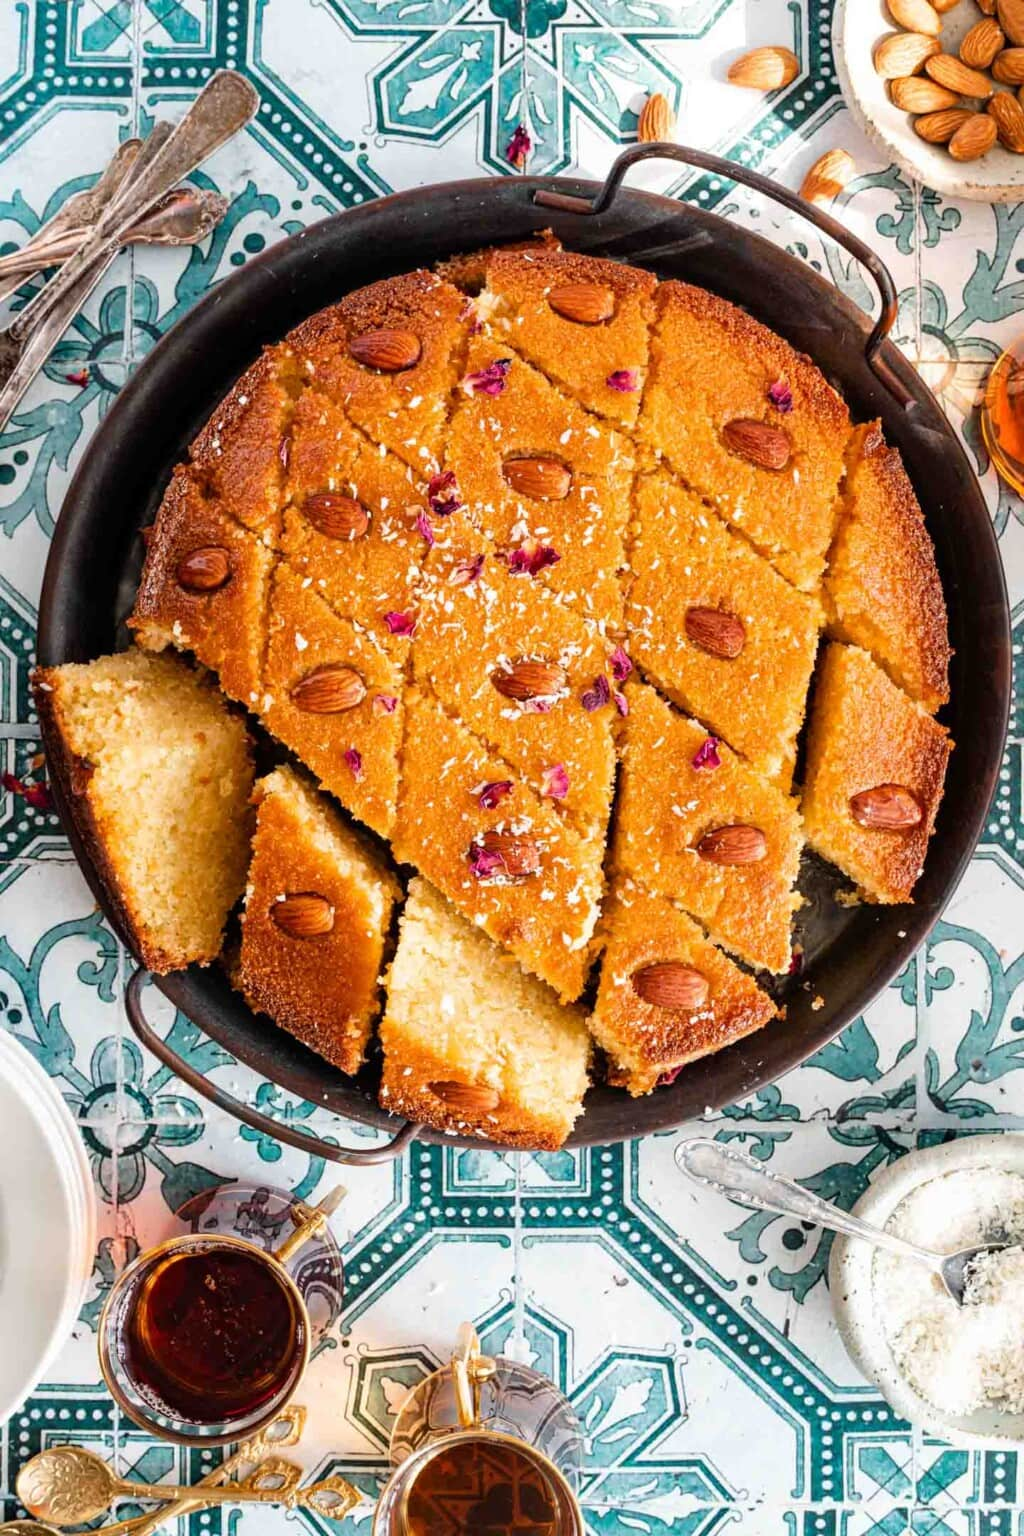 Semolina cake pieces displayed in a tray served with black tea.